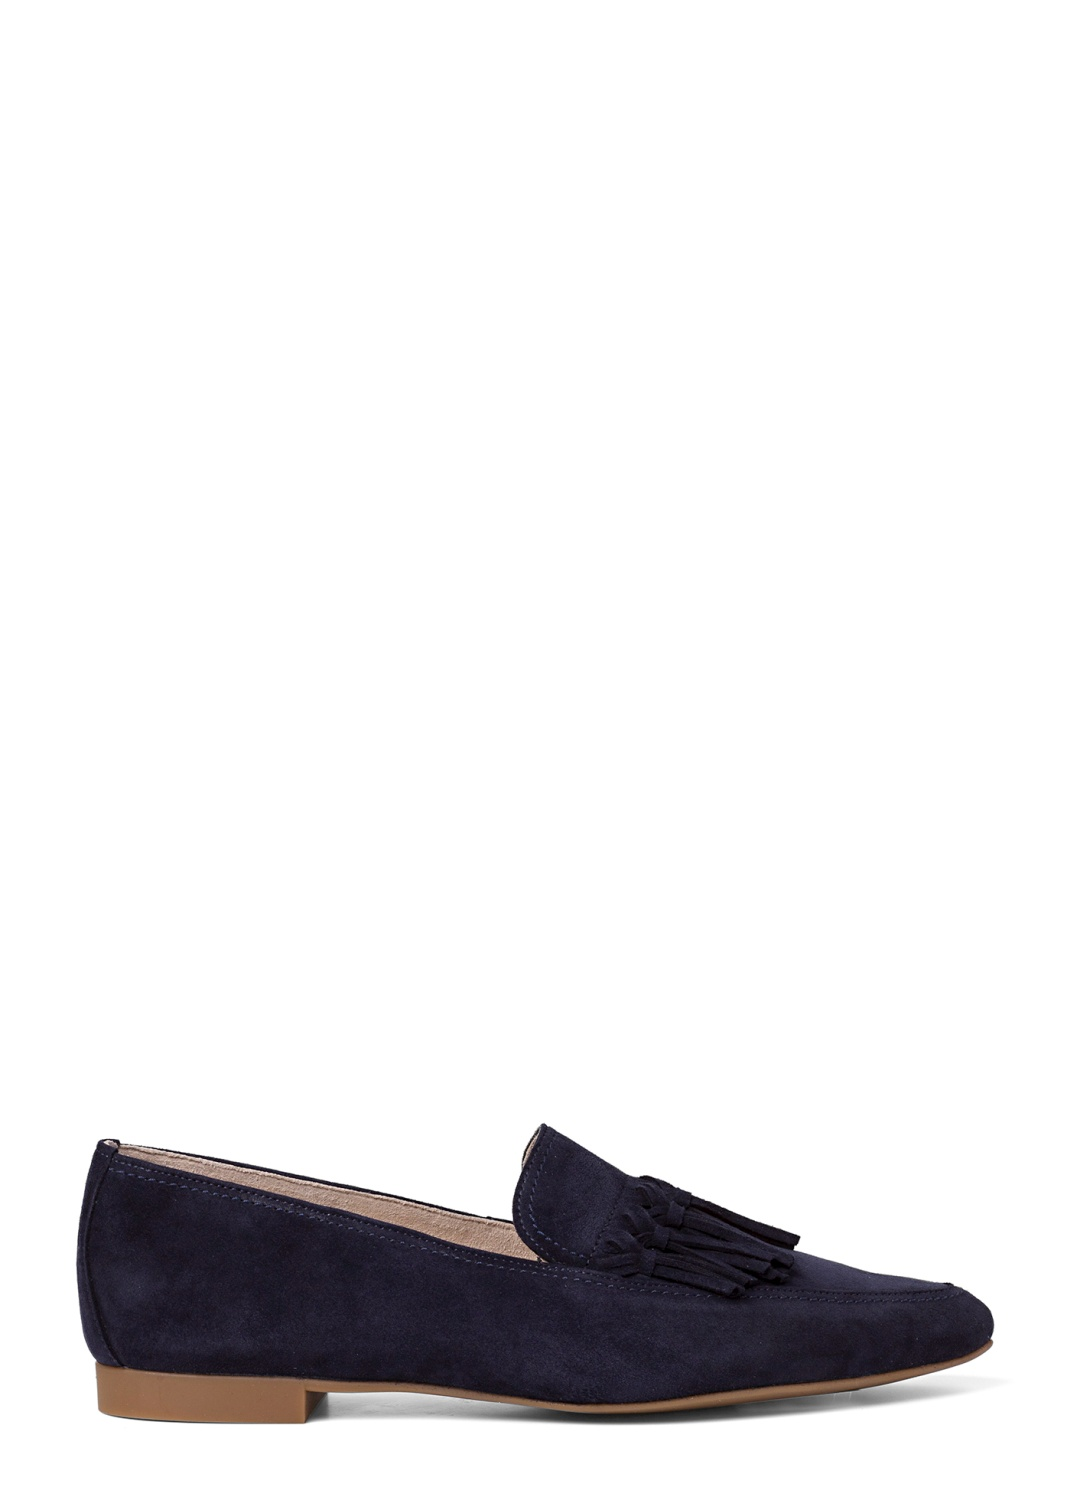 14_Pointy Loafer Tasseln Suede image number 0